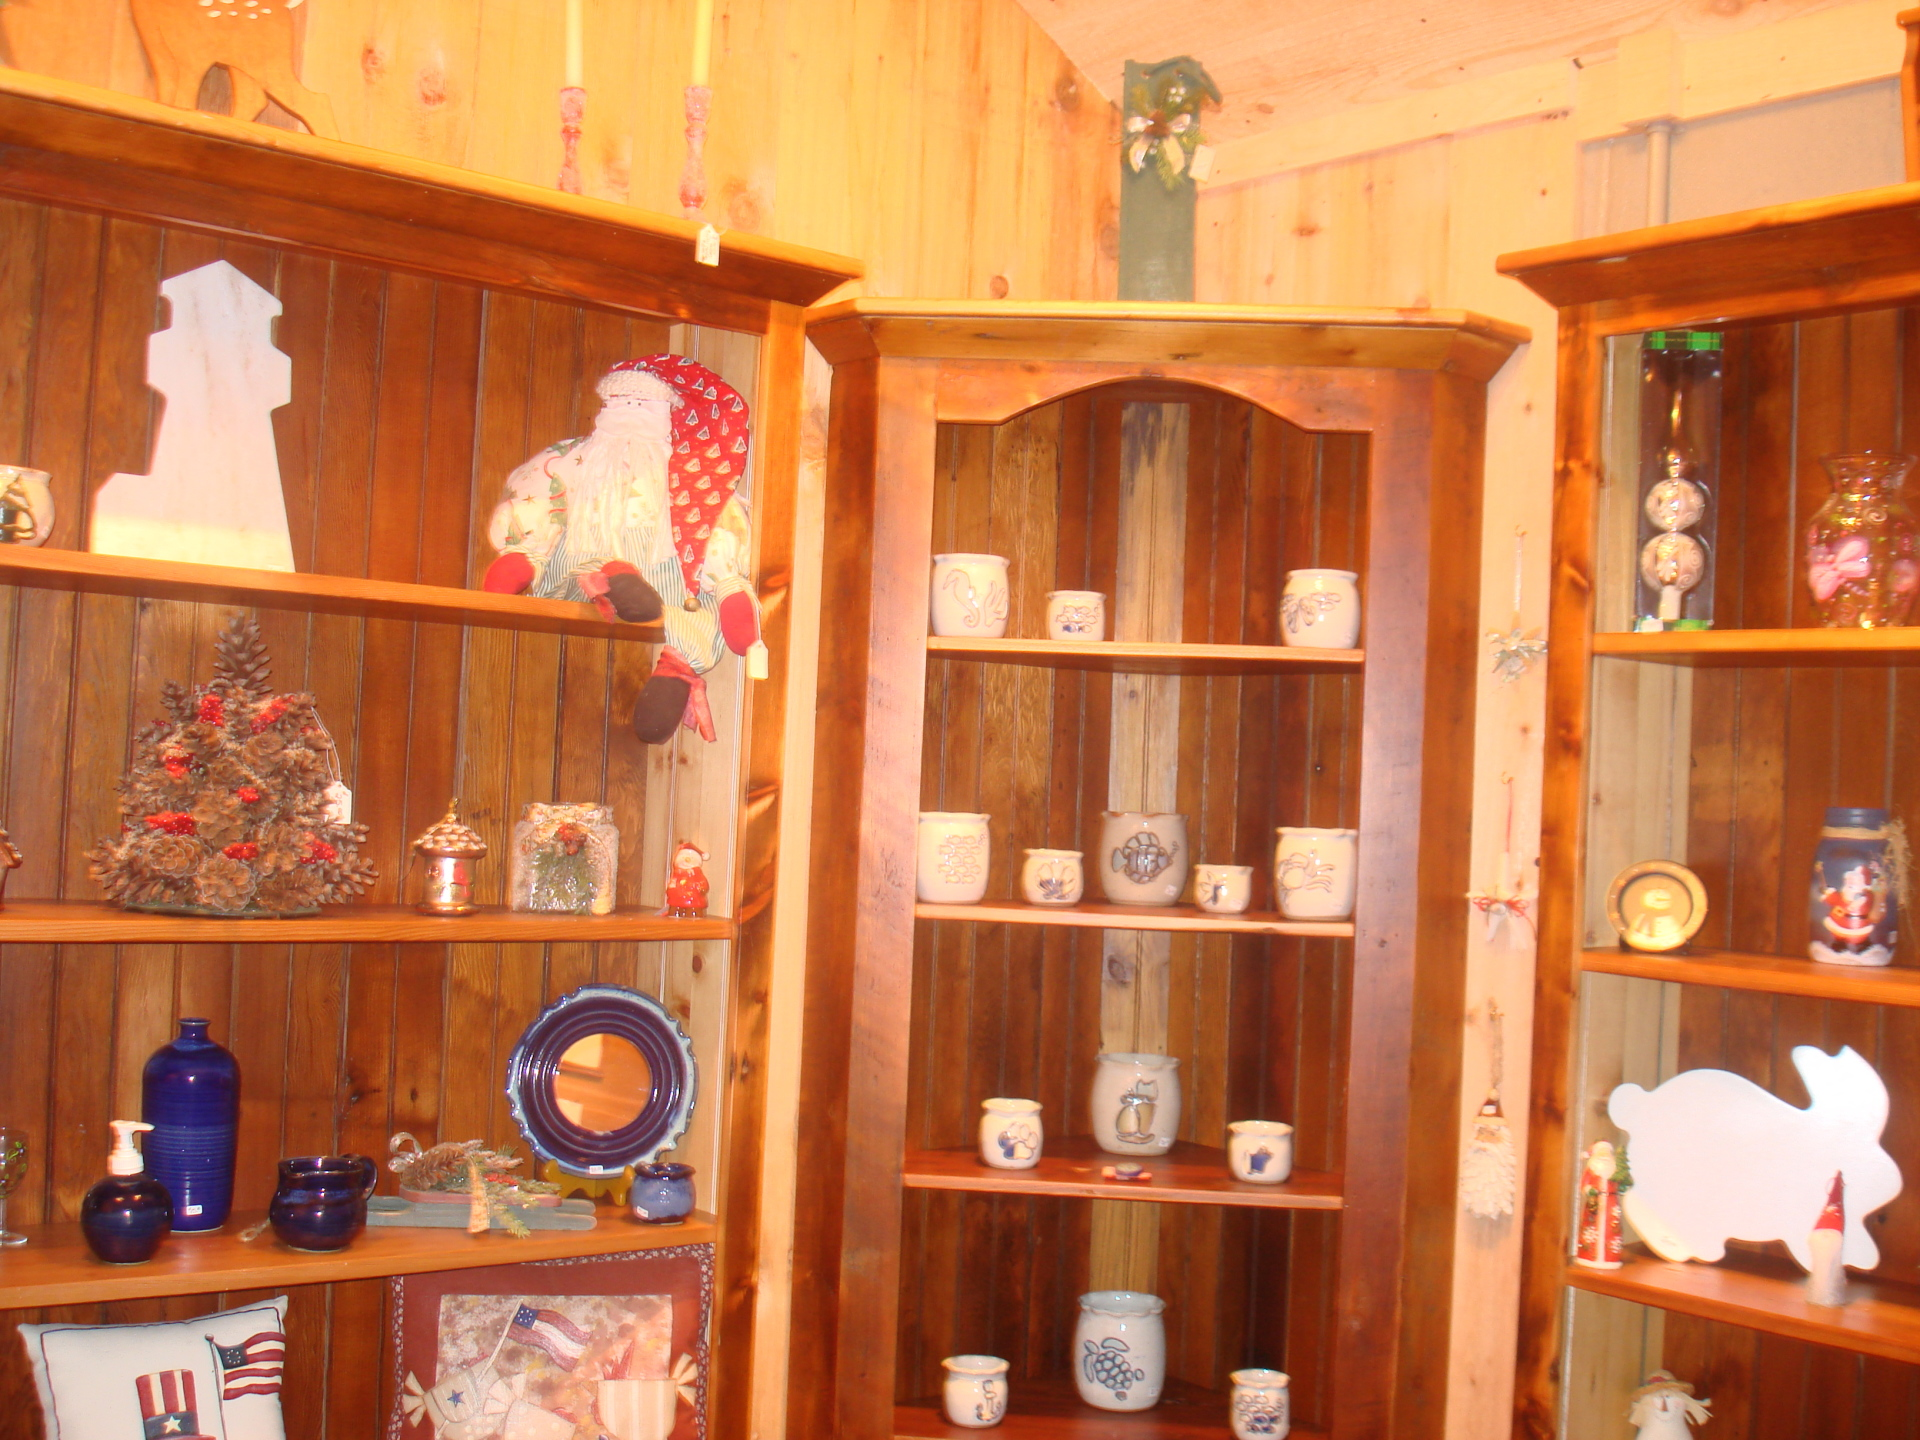 Shelves filled with great gifts